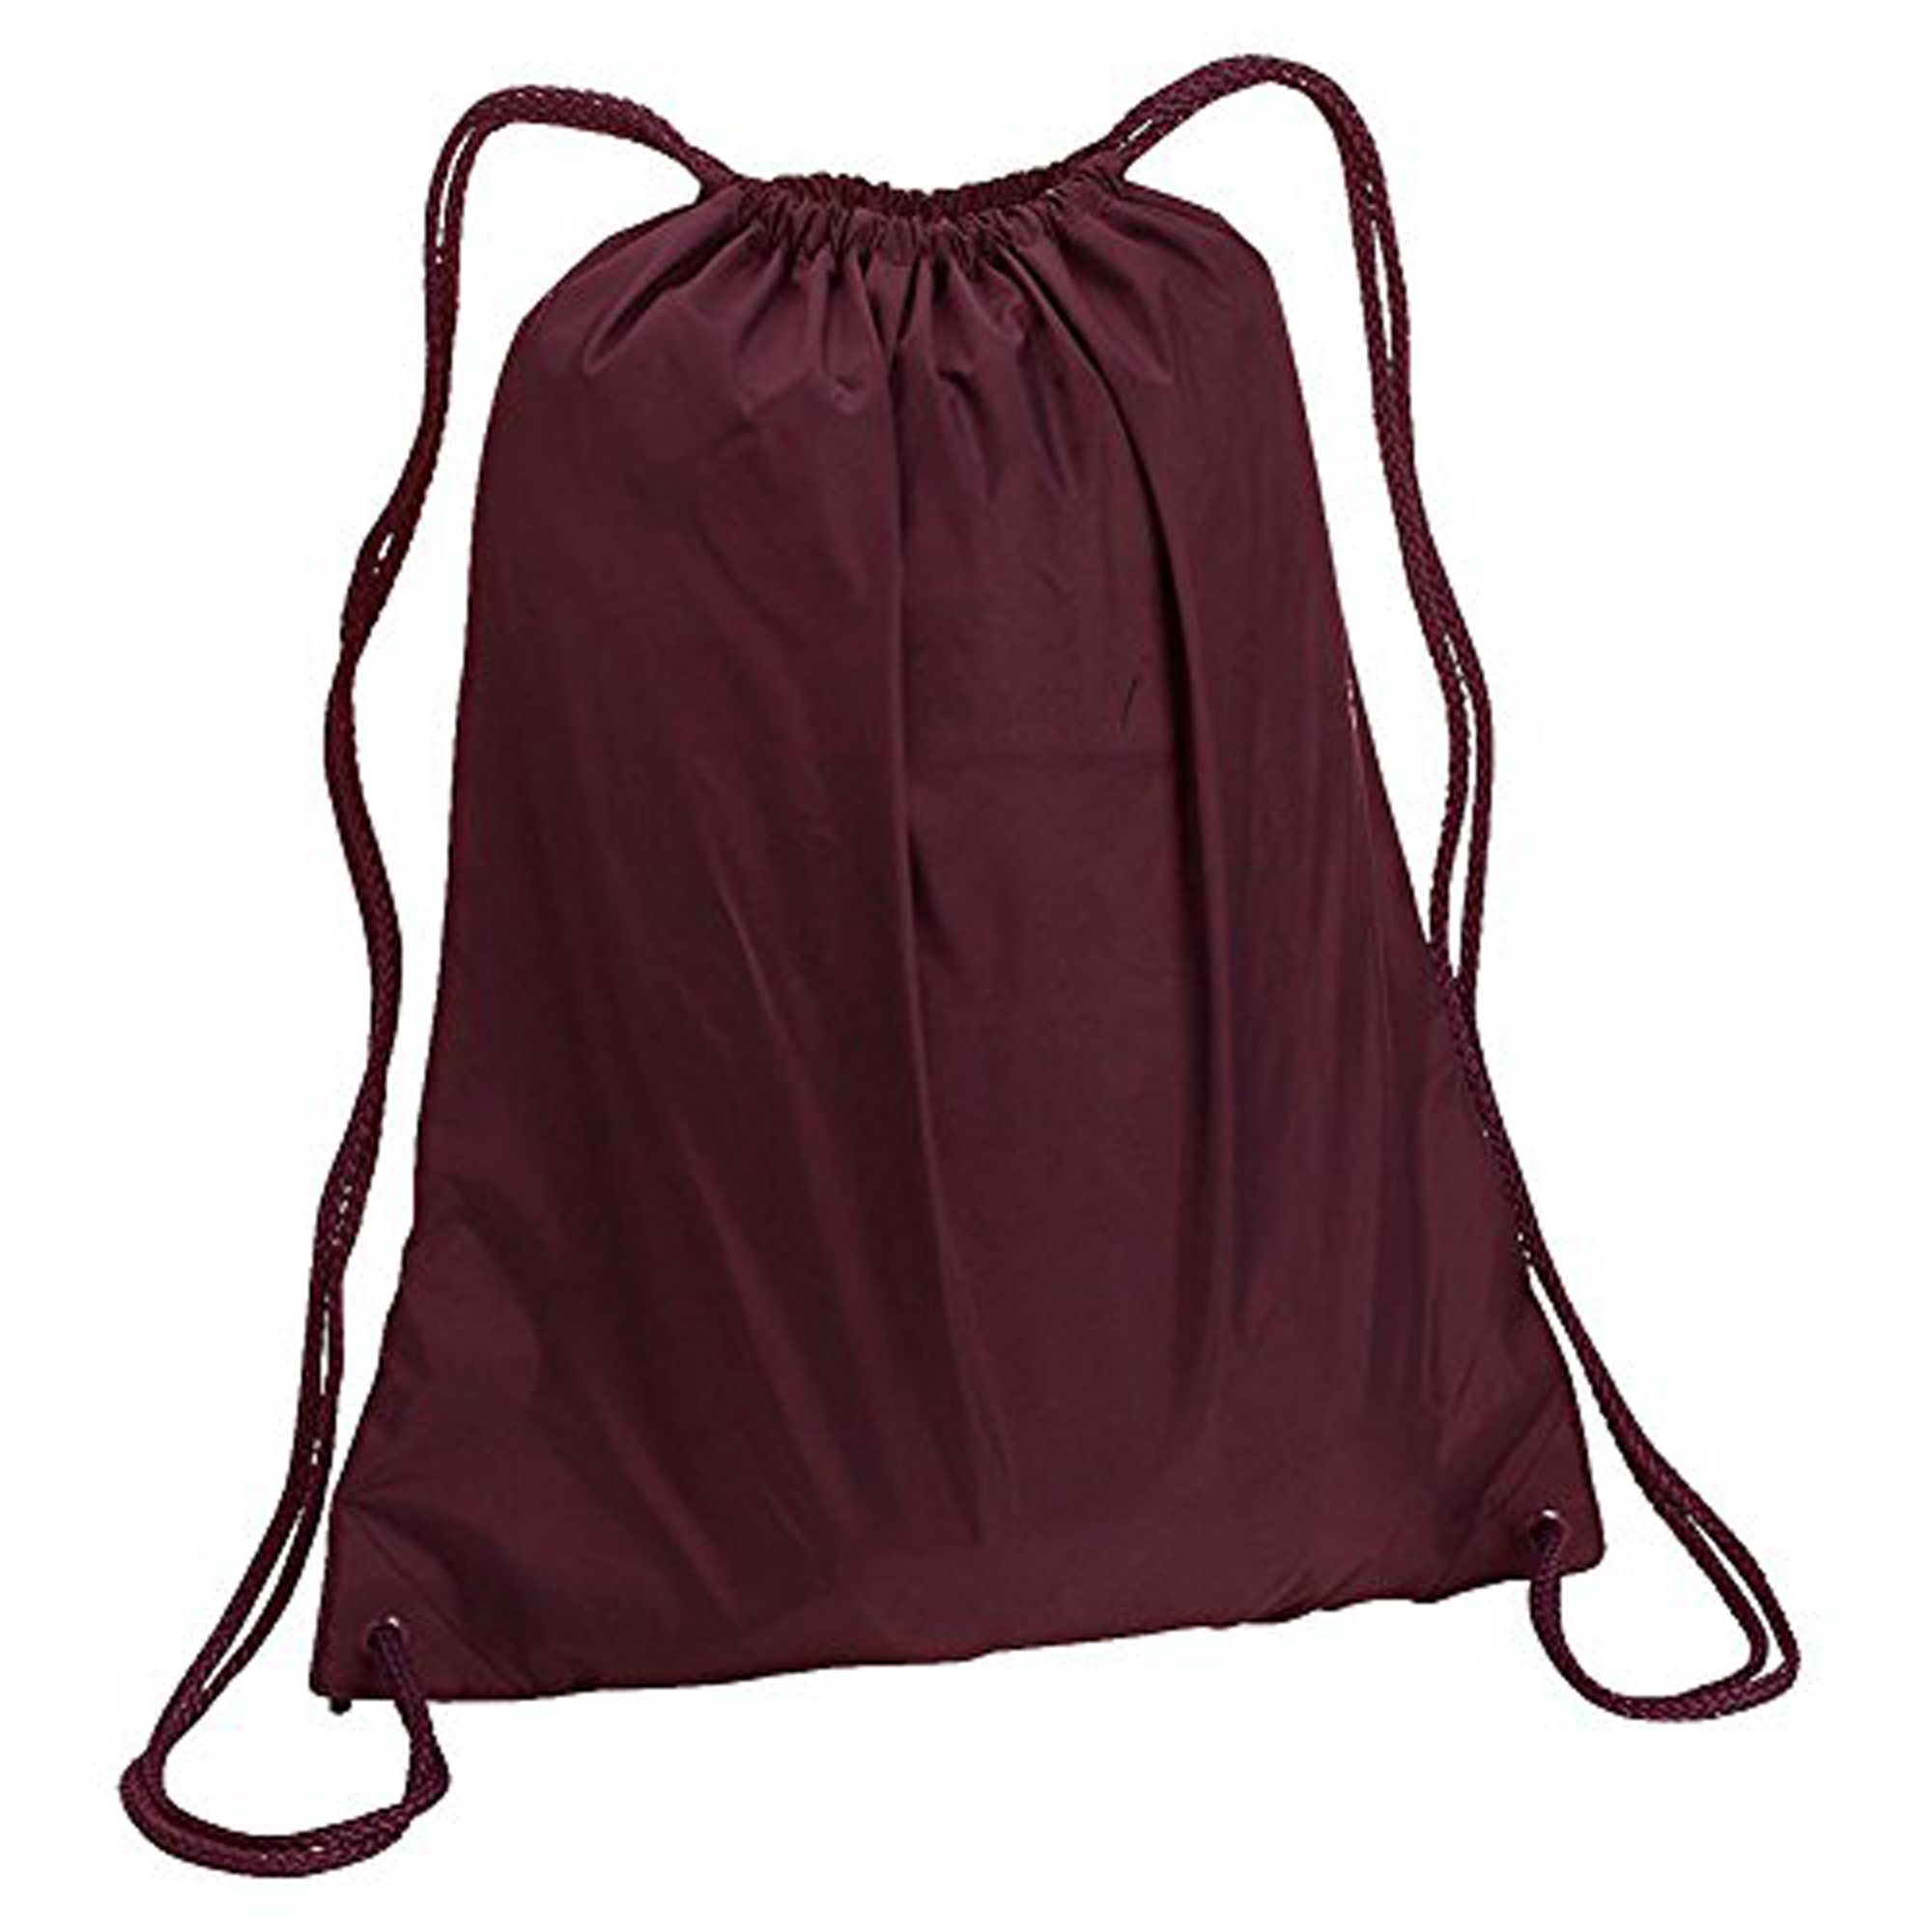 Burgundy Drawstring Cinch Sack Backpack School Tote Gym Sports Beach Travel Bag